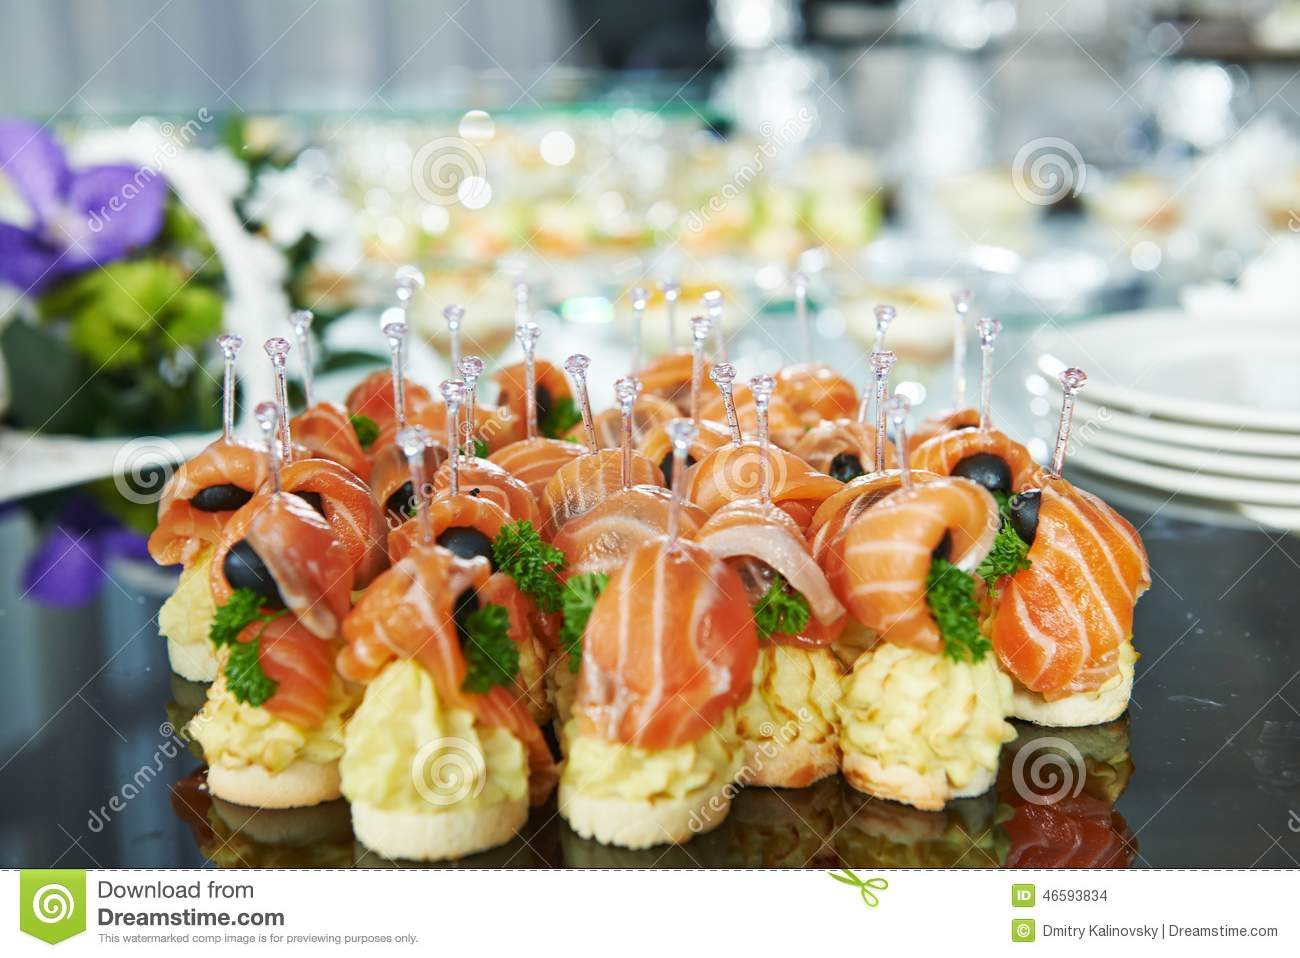 Table Snack Cuisine Catering Service Table With Food Set Stock Photo Image